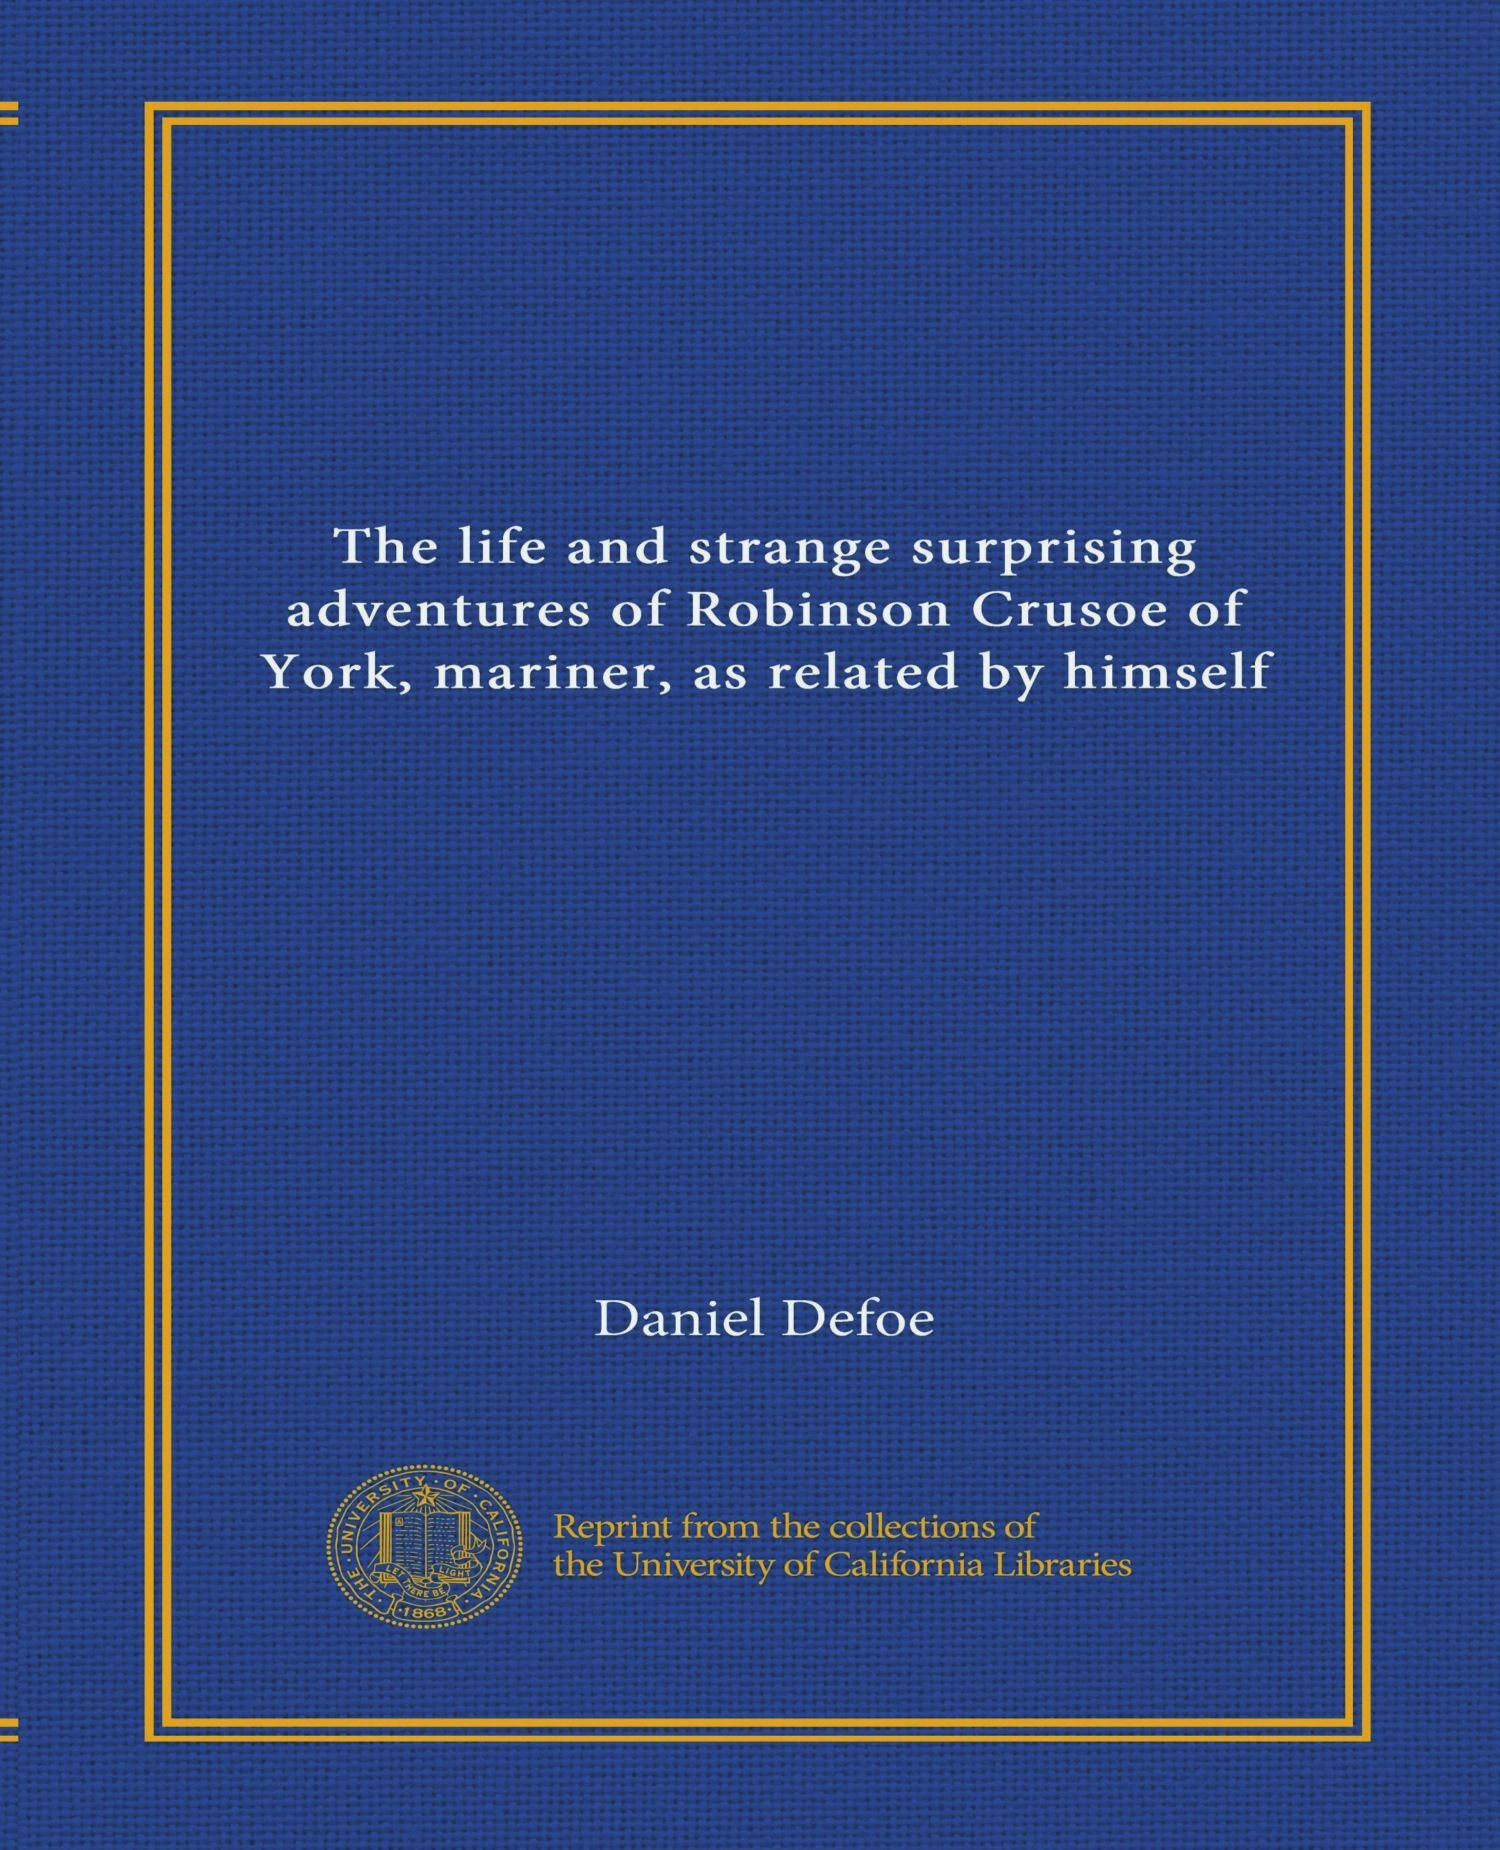 The life and strange surprising adventures of Robinson Crusoe of York, mariner, as related by himself (Vol-1) PDF